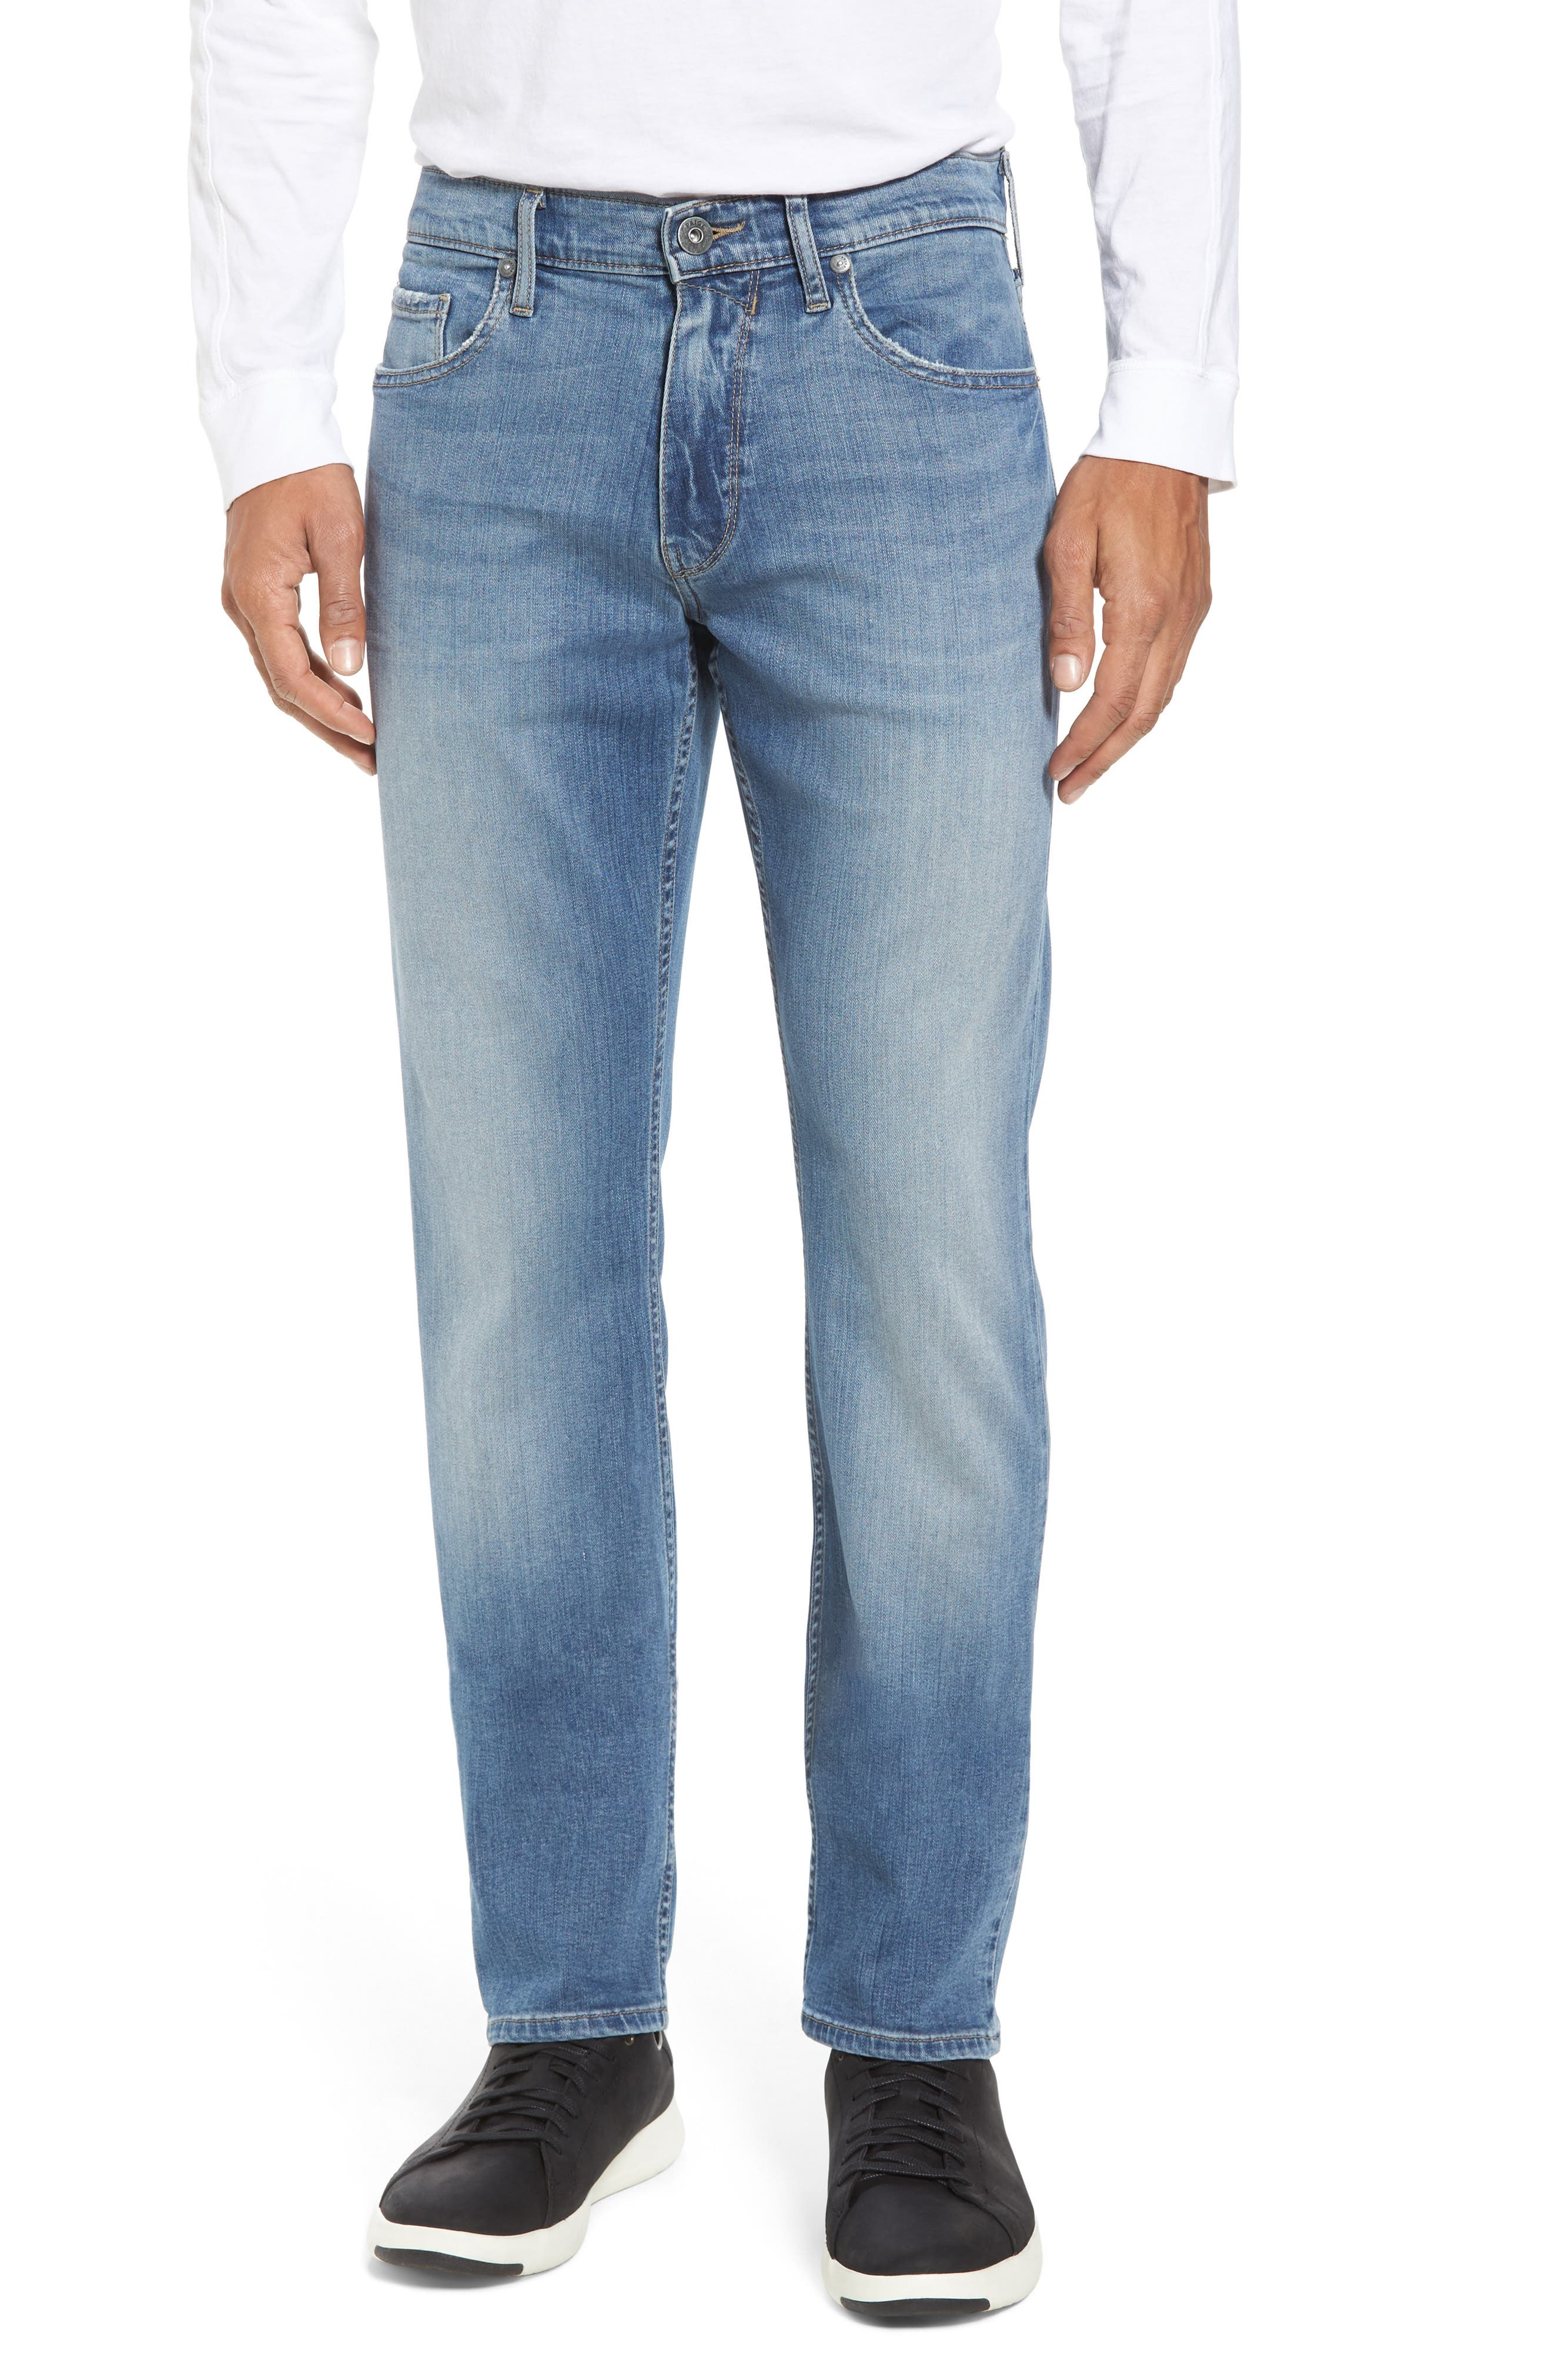 Transcend - Federal Slim Straight Fit Jeans,                             Main thumbnail 1, color,                             400